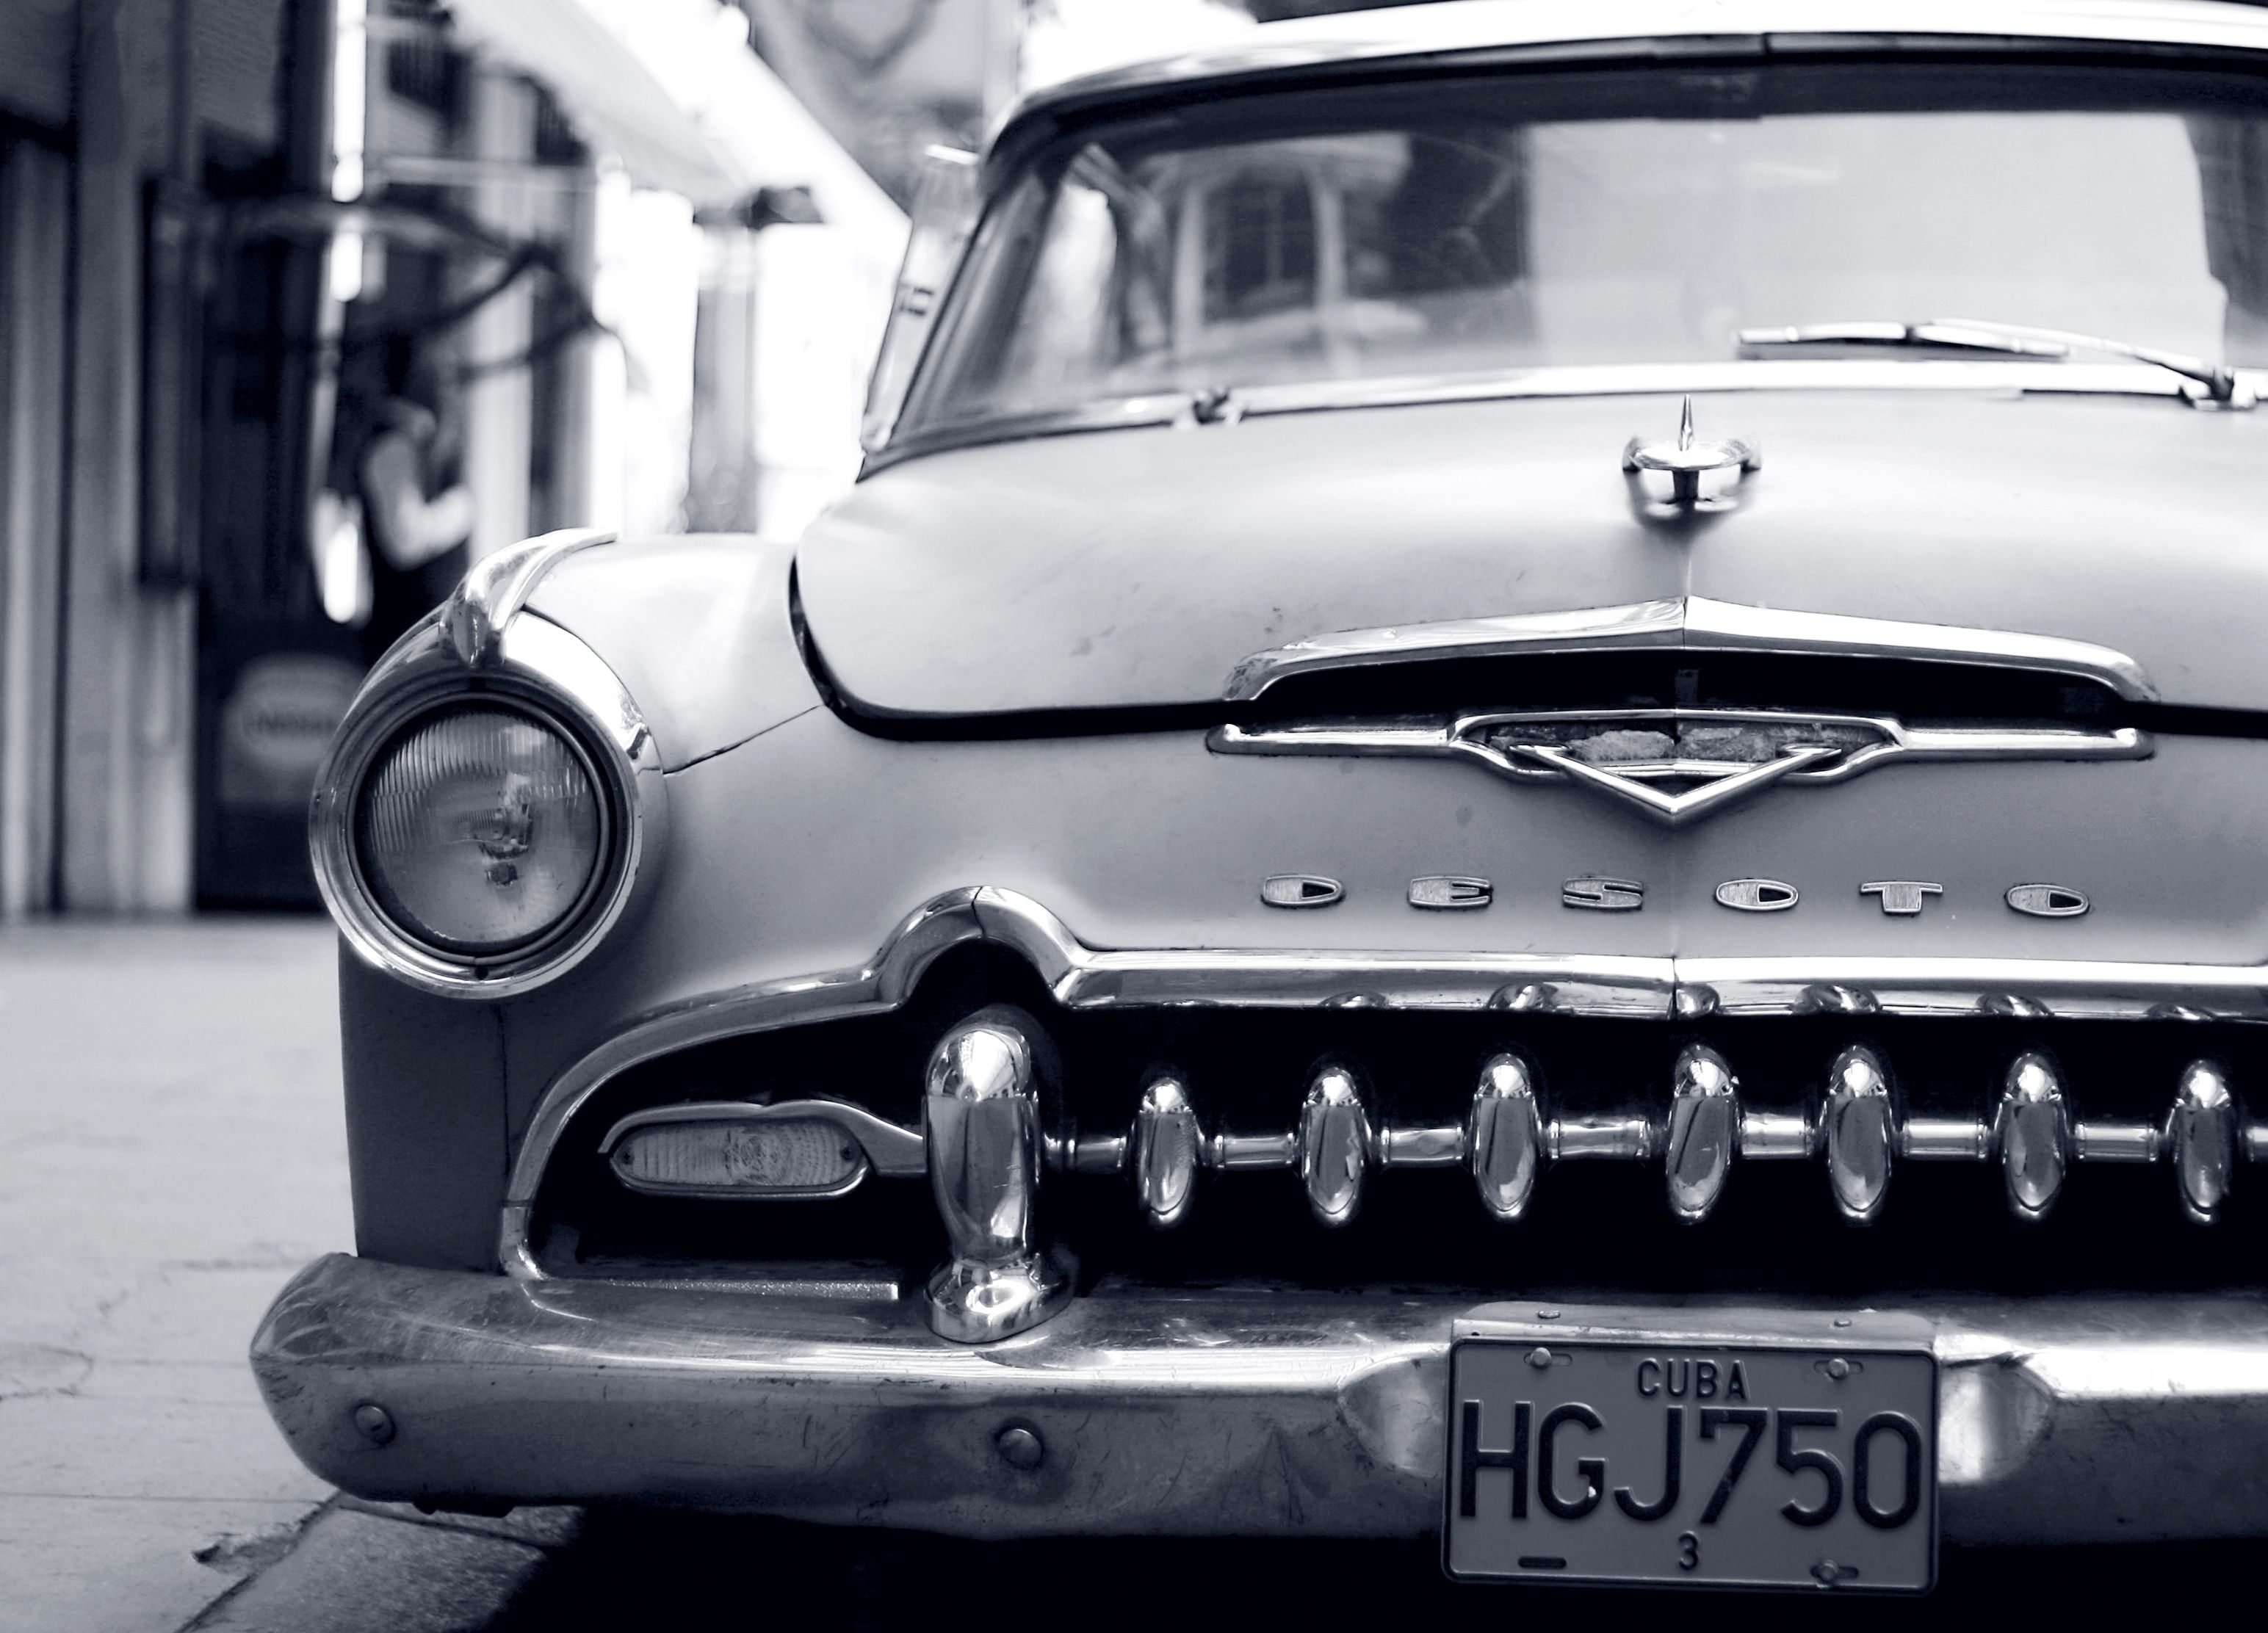 How to Travel To and From Cuba | Cars, Chrysler cars and Cars usa